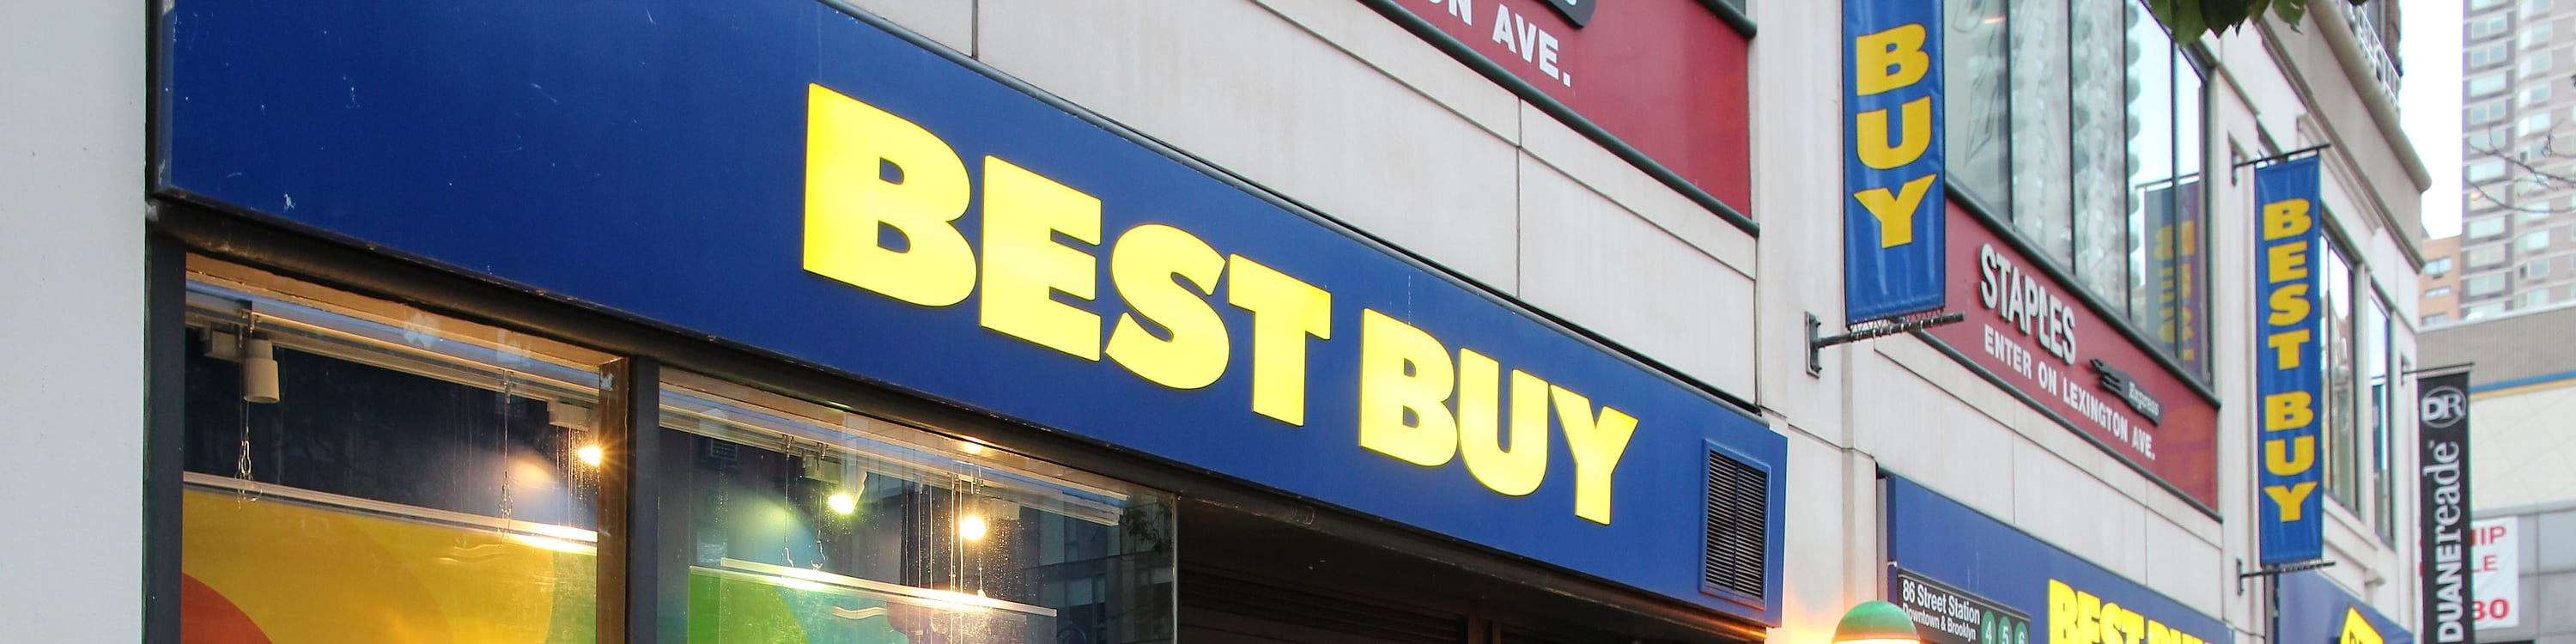 Best Buy Store in New York